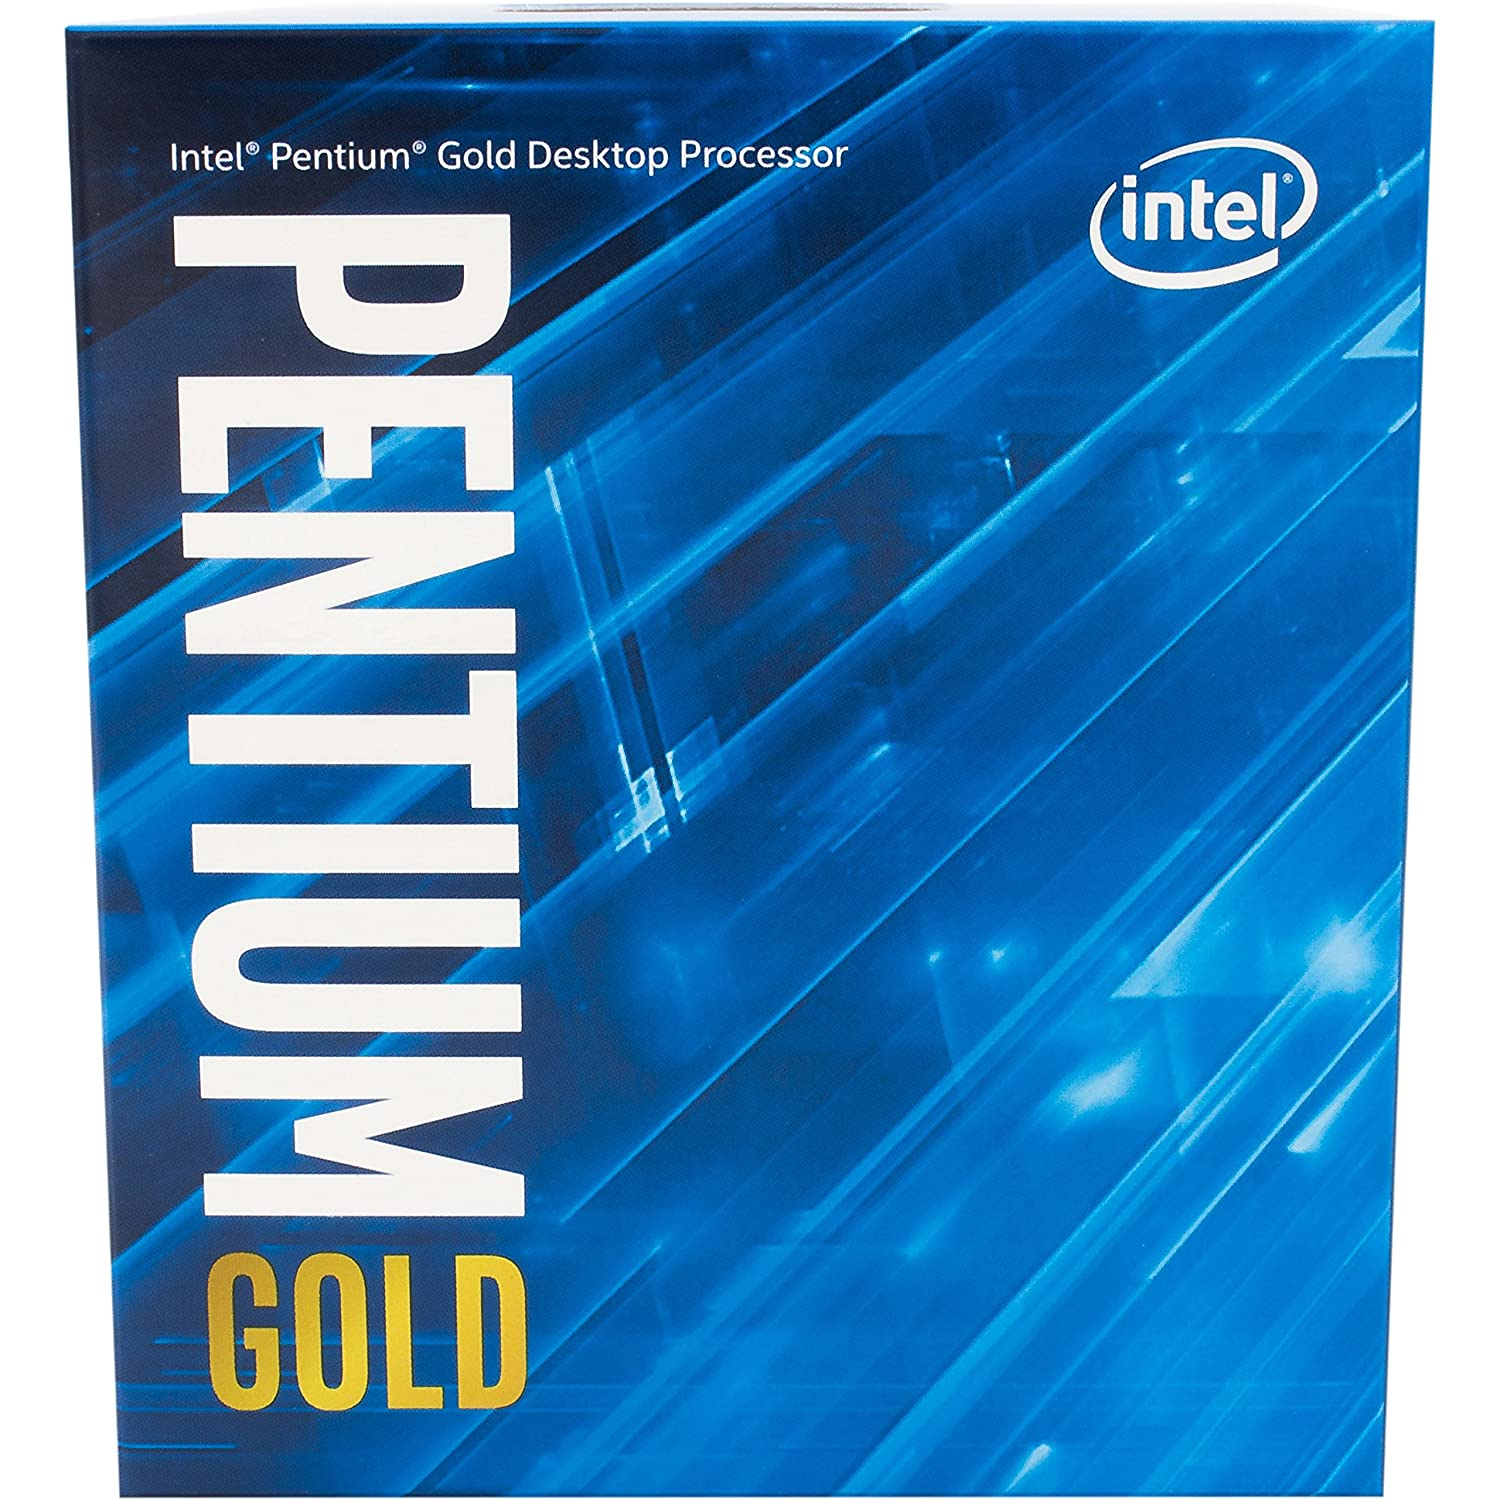 Buy Intel Pentium G5400 Desktop Processor 2 Core 37ghz Electric Circuit Board Tshirt Spreadshirt Lga1151 300 Series 54w 58w Gold Bx80684g5400 Online At Low Prices In India